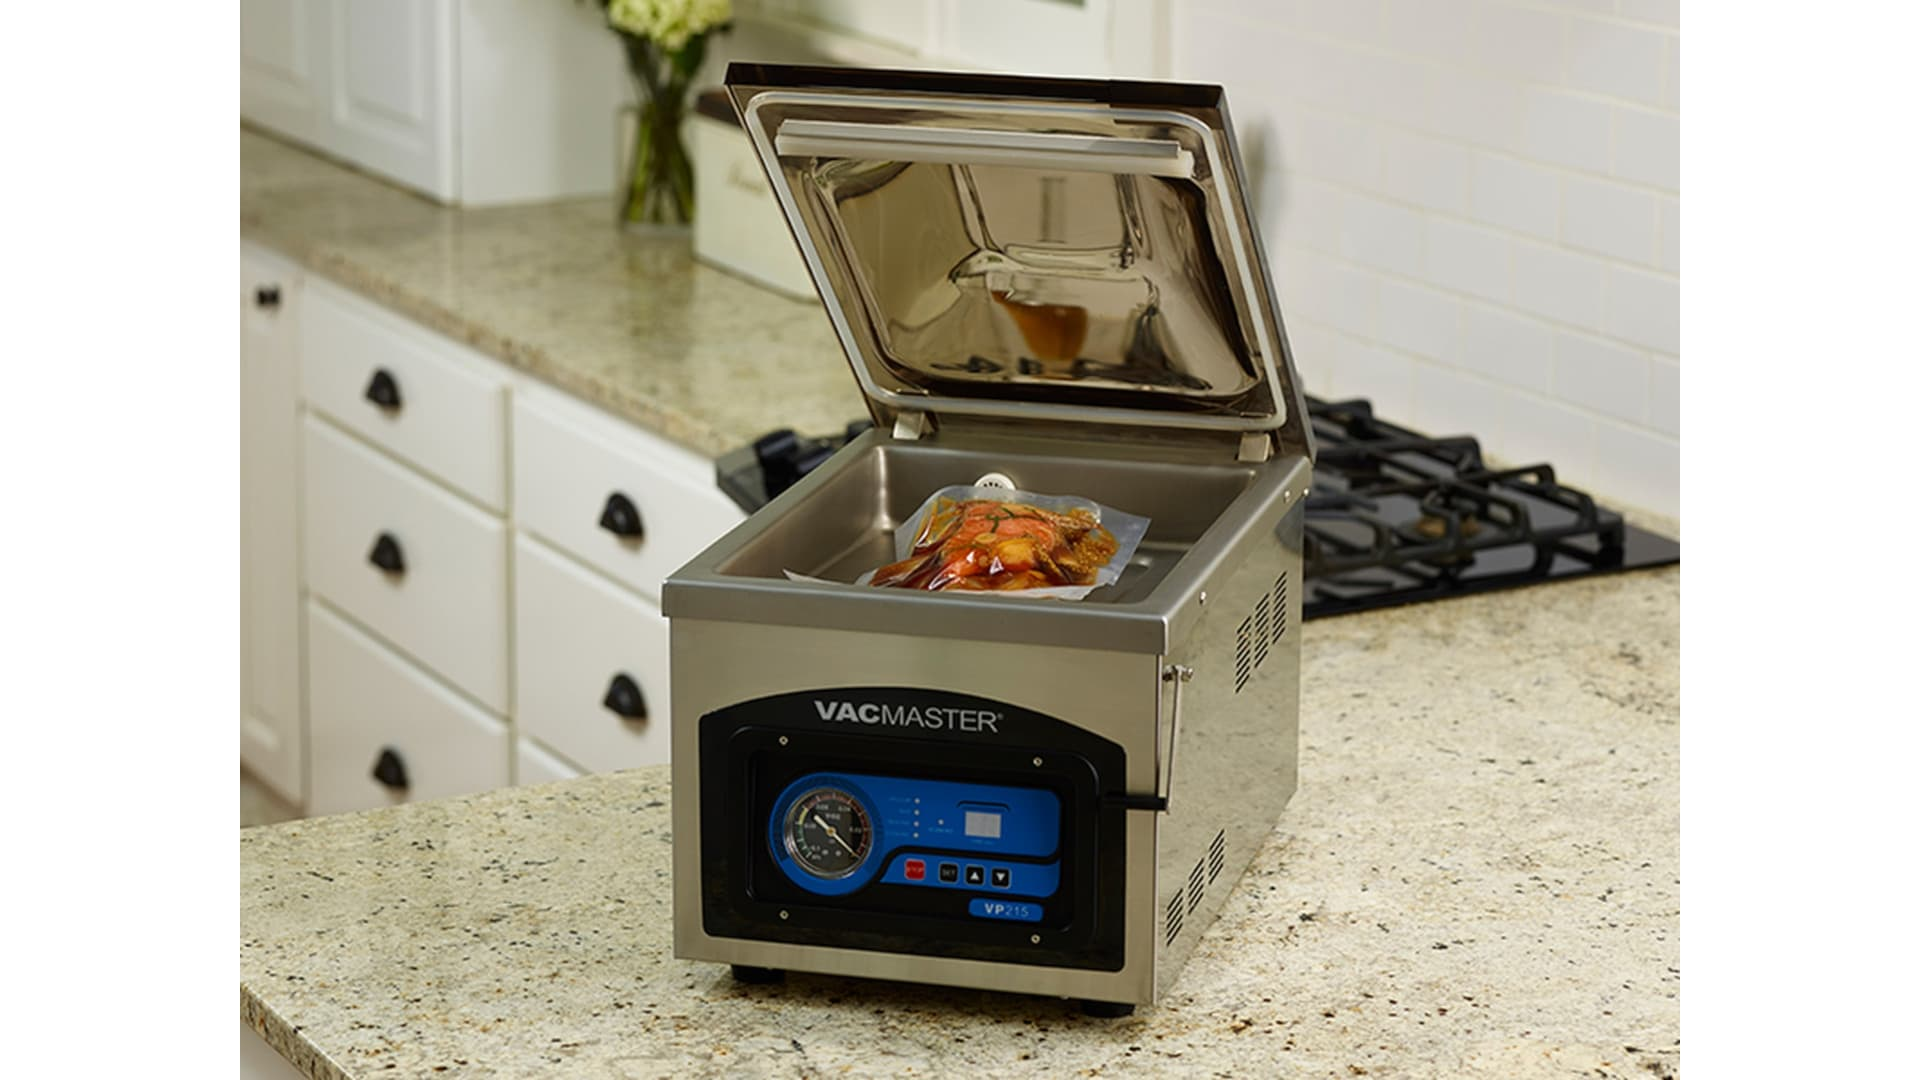 VacMaster VP215 featured image